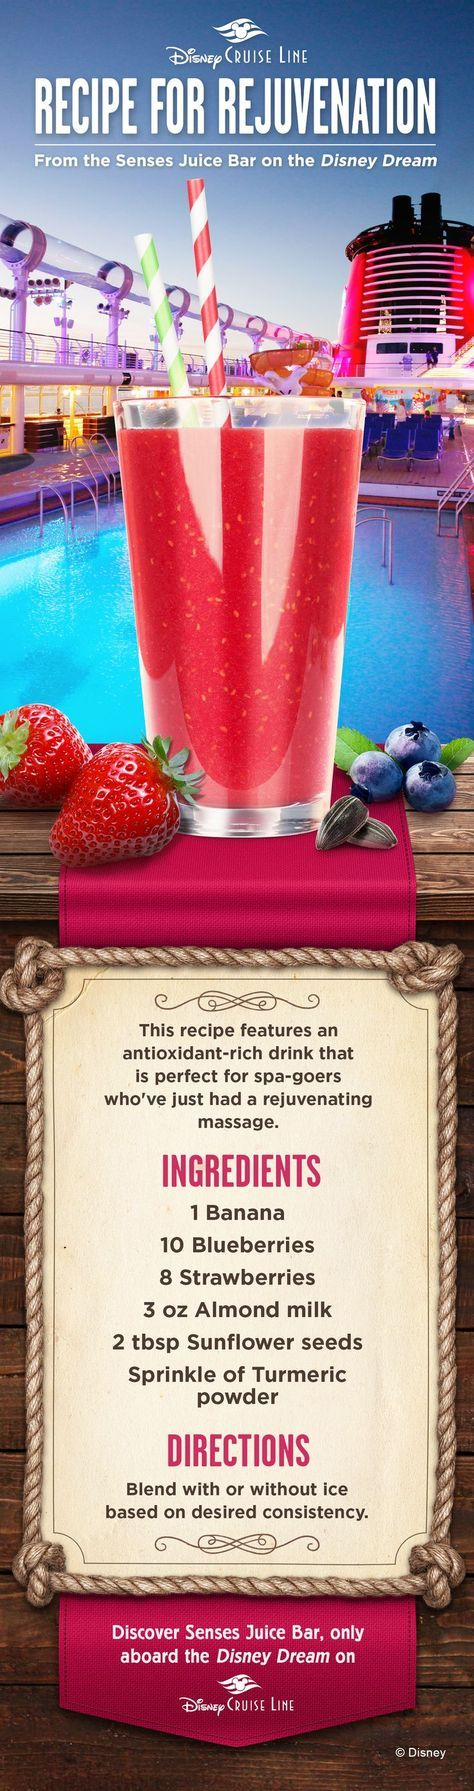 Following a rejuvenating massage or facial, this antioxidant-rich drink will be calling your name. Check out this delicious Disney Cruise Line recipe, inspired by Senses Juice Bar onboard Disney Dream.